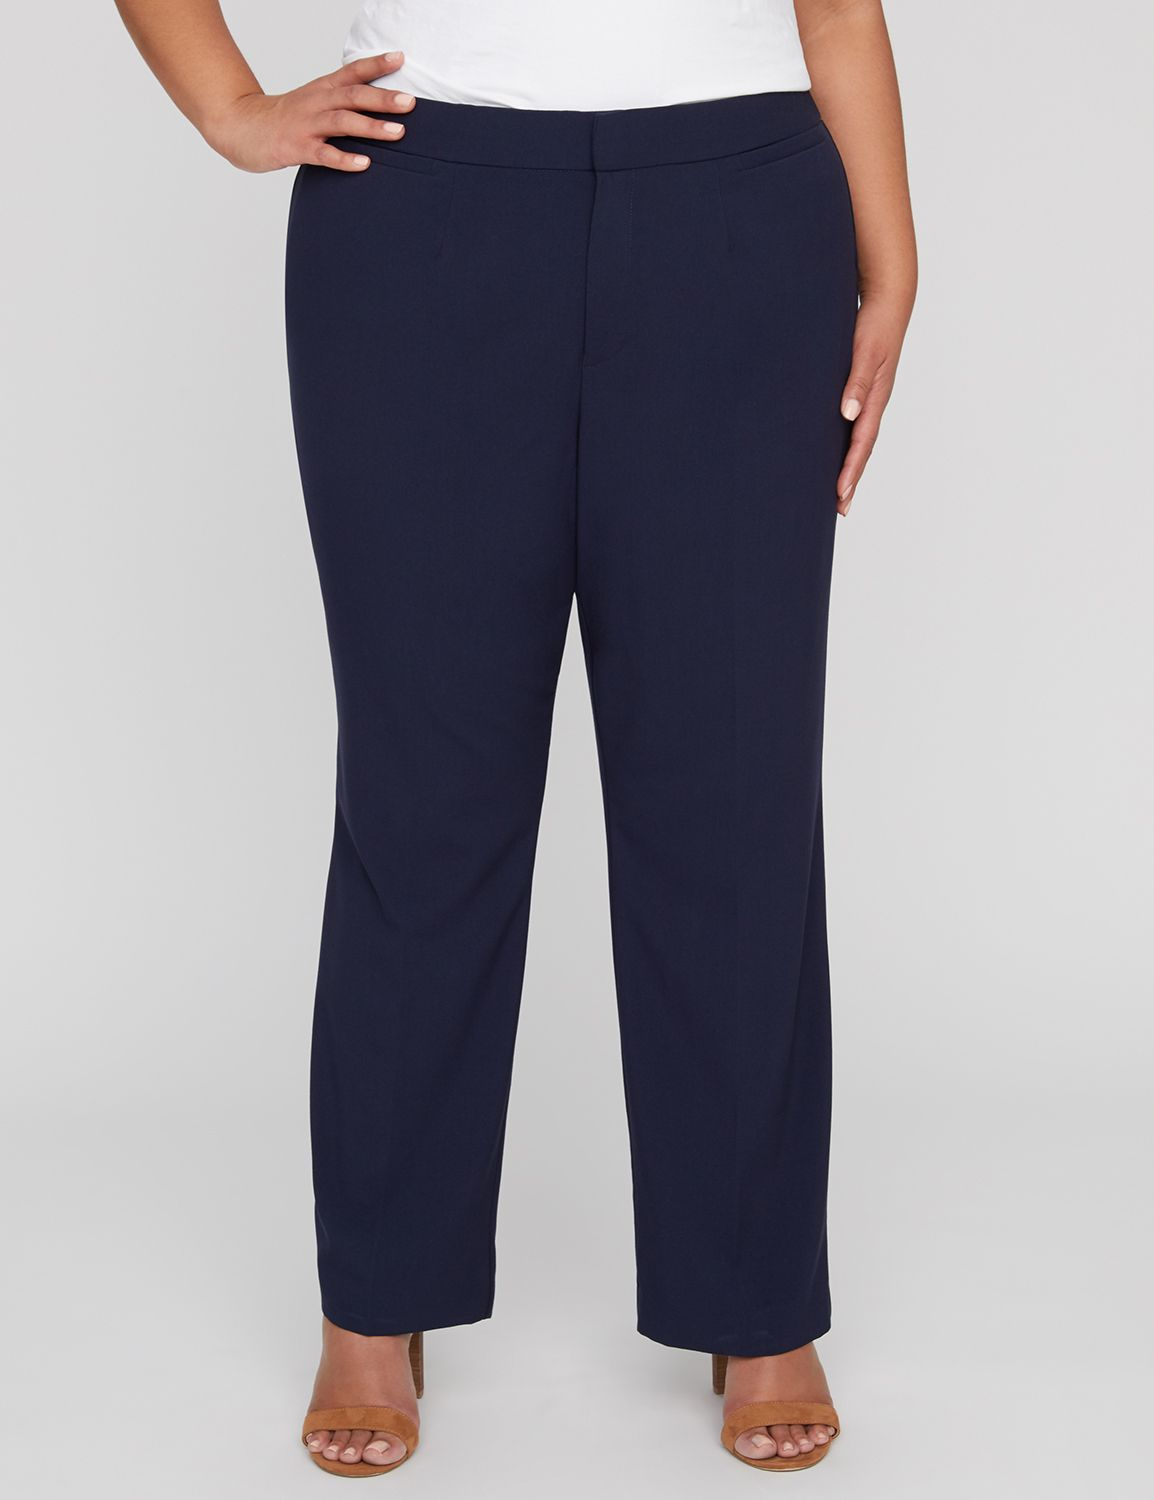 Right Fit Pant (Curvy) Right Fit Pant (Curvy) MP-300043648